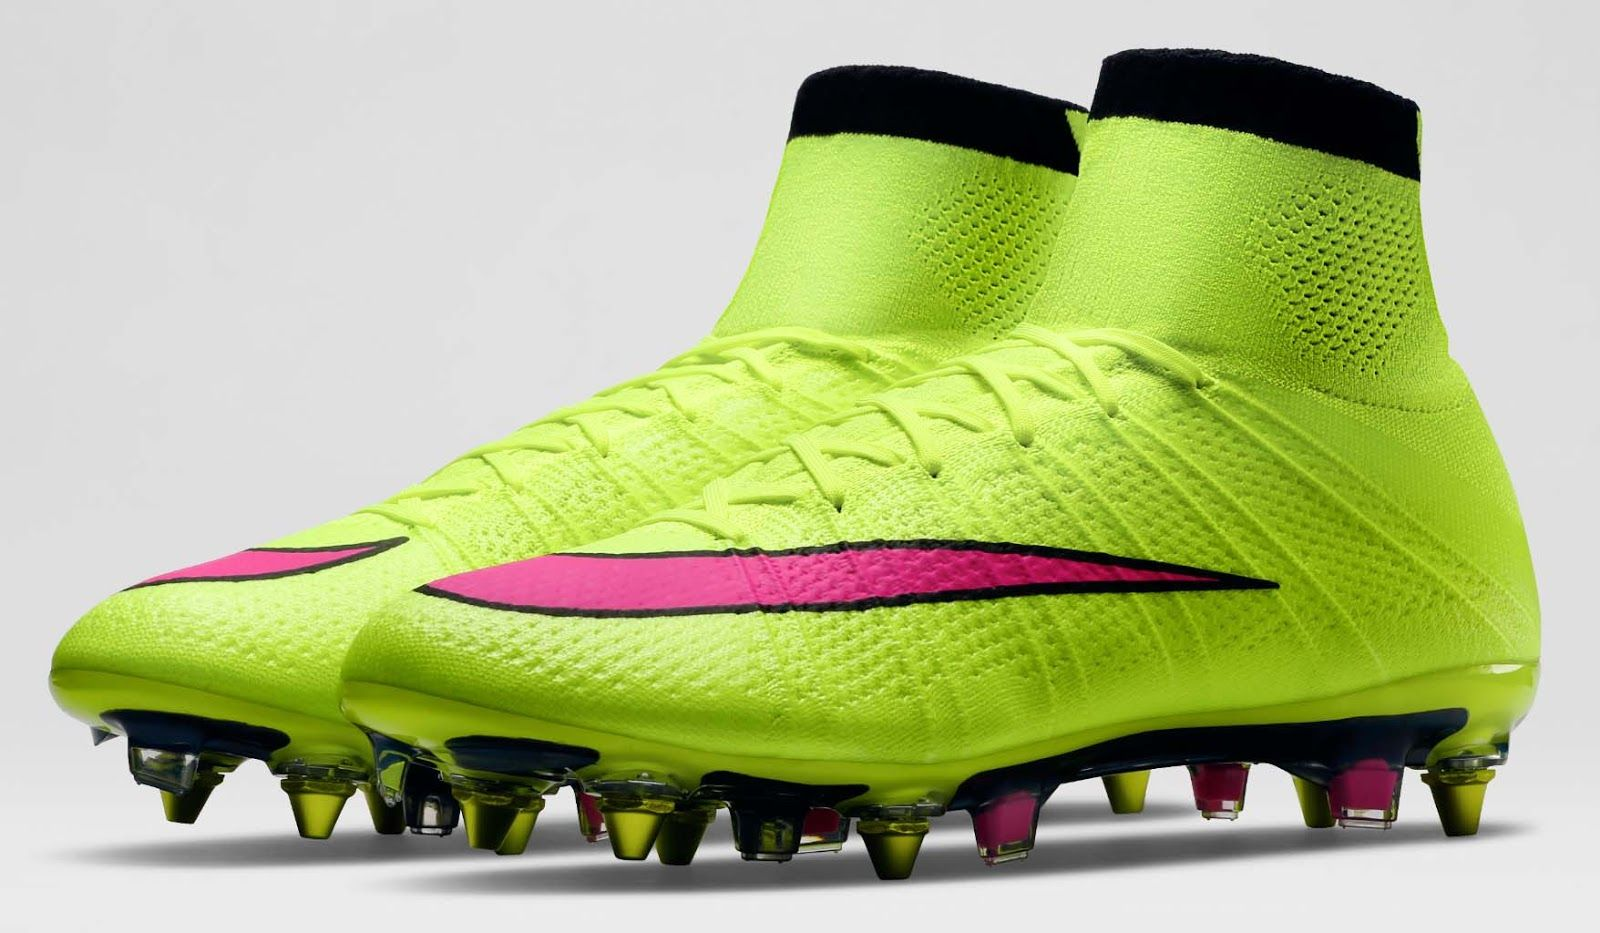 new nike superfly 2015